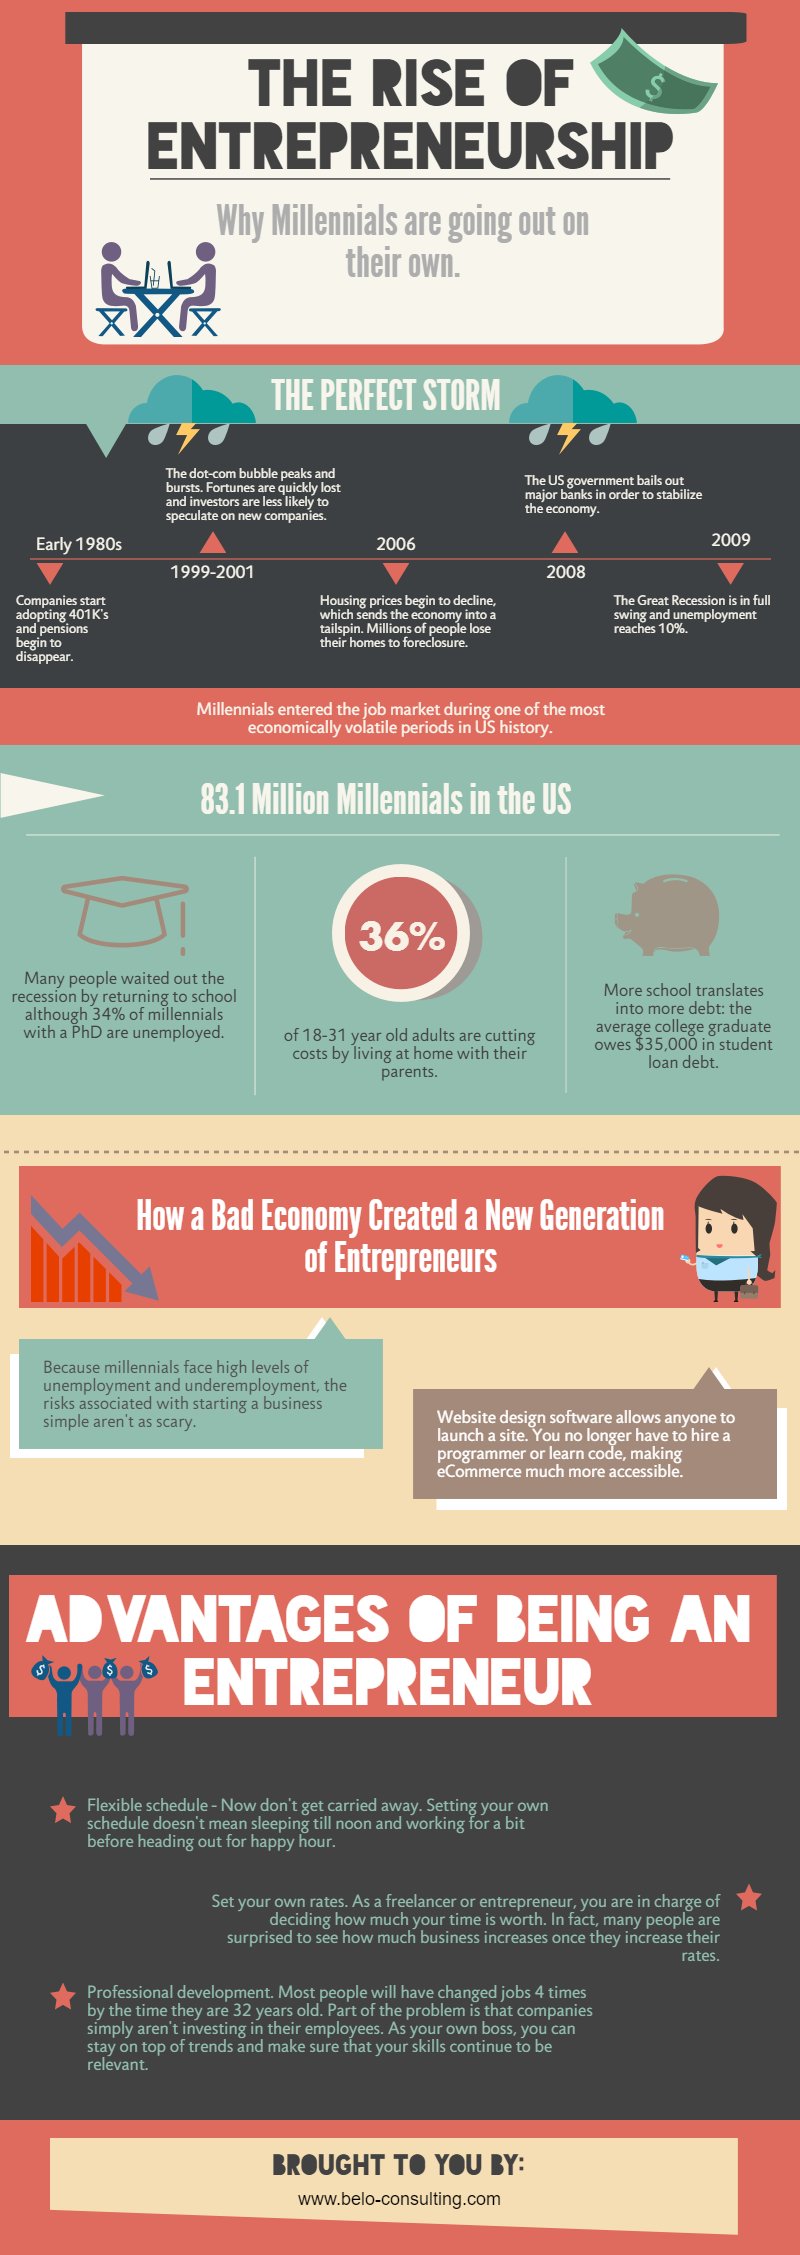 www.the-rise-of-entrepreneurship-infographic.jog